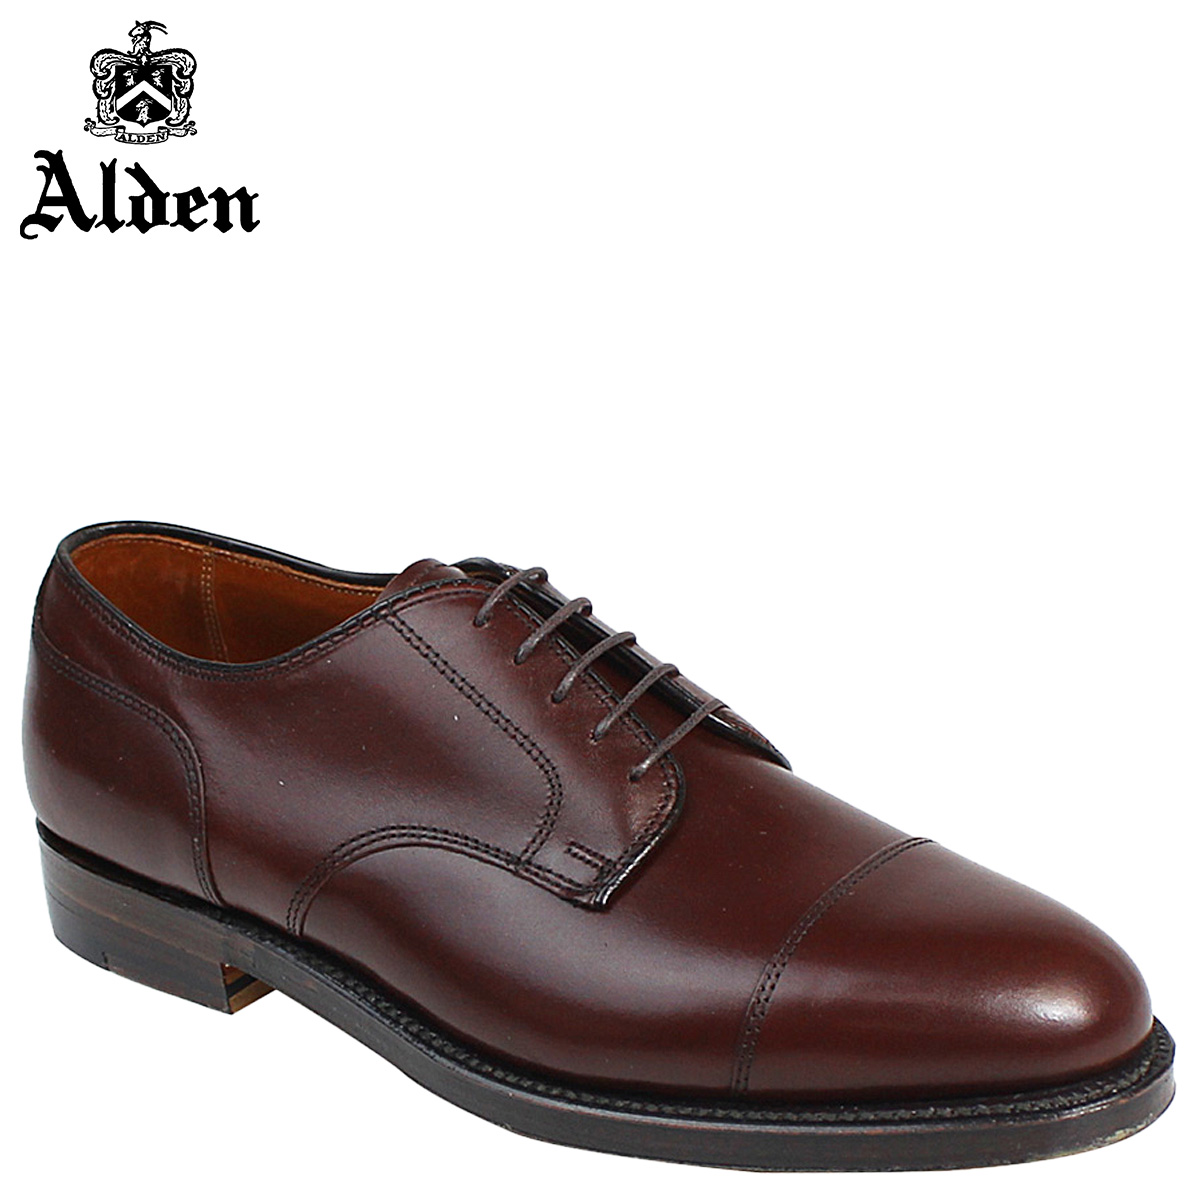 9860bd05af23 Mens traditional shoes using the highest quality materials available. Japan  also support thicker and its comfort is recognised world-wide.